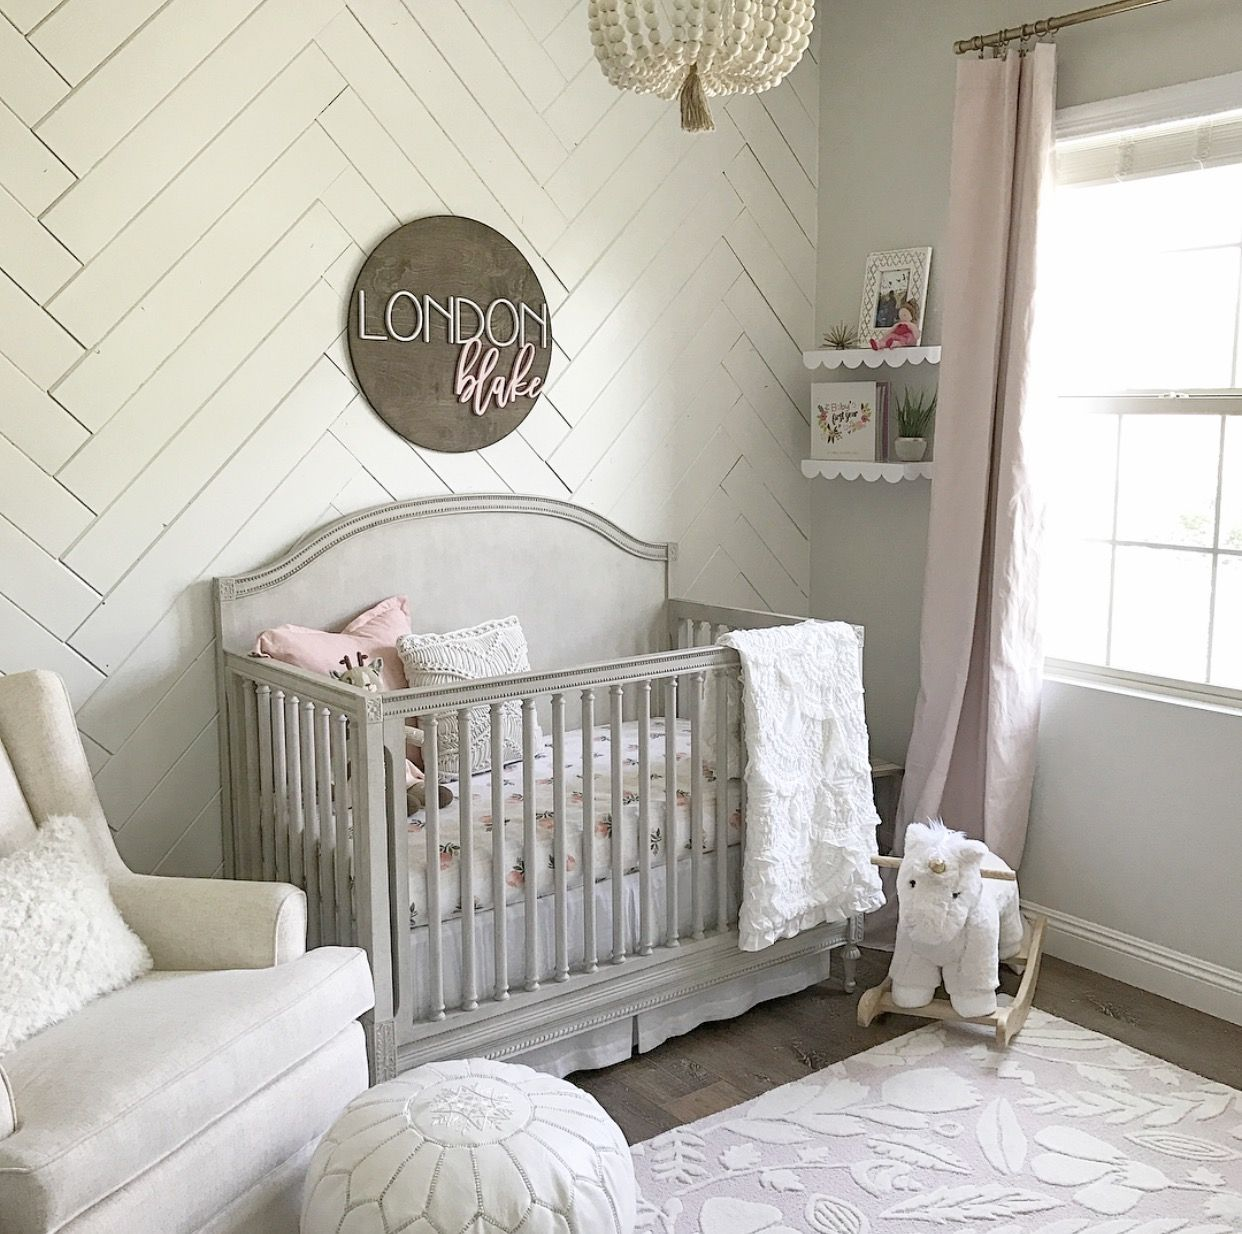 Sweet Baby Girl Nursery - Project Nursery  Baby room decor, Baby